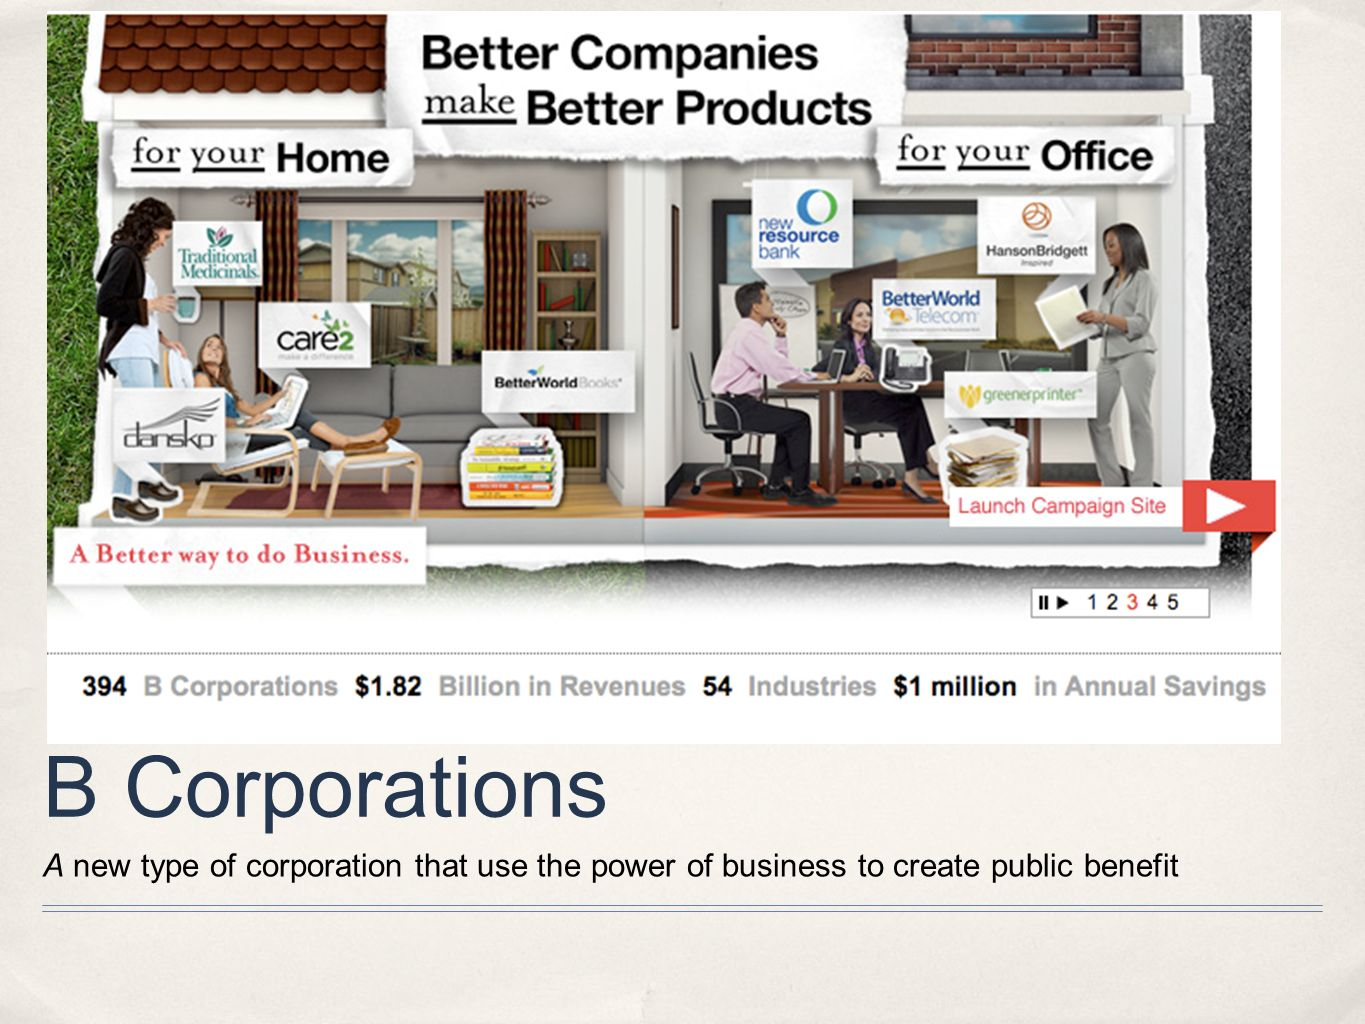 B Corporations A new type of corporation that use the power of business to create public benefit